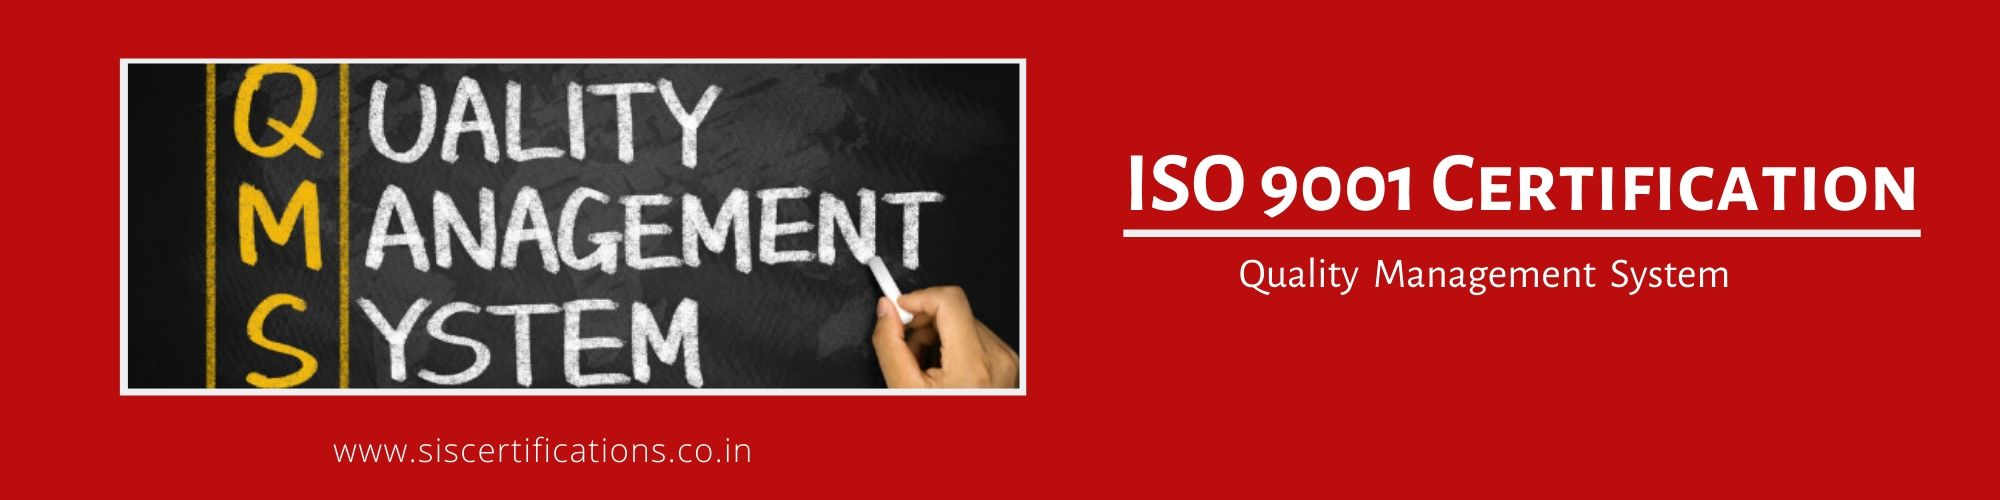 ISO 9001 Certification , ISO 9001 Certification